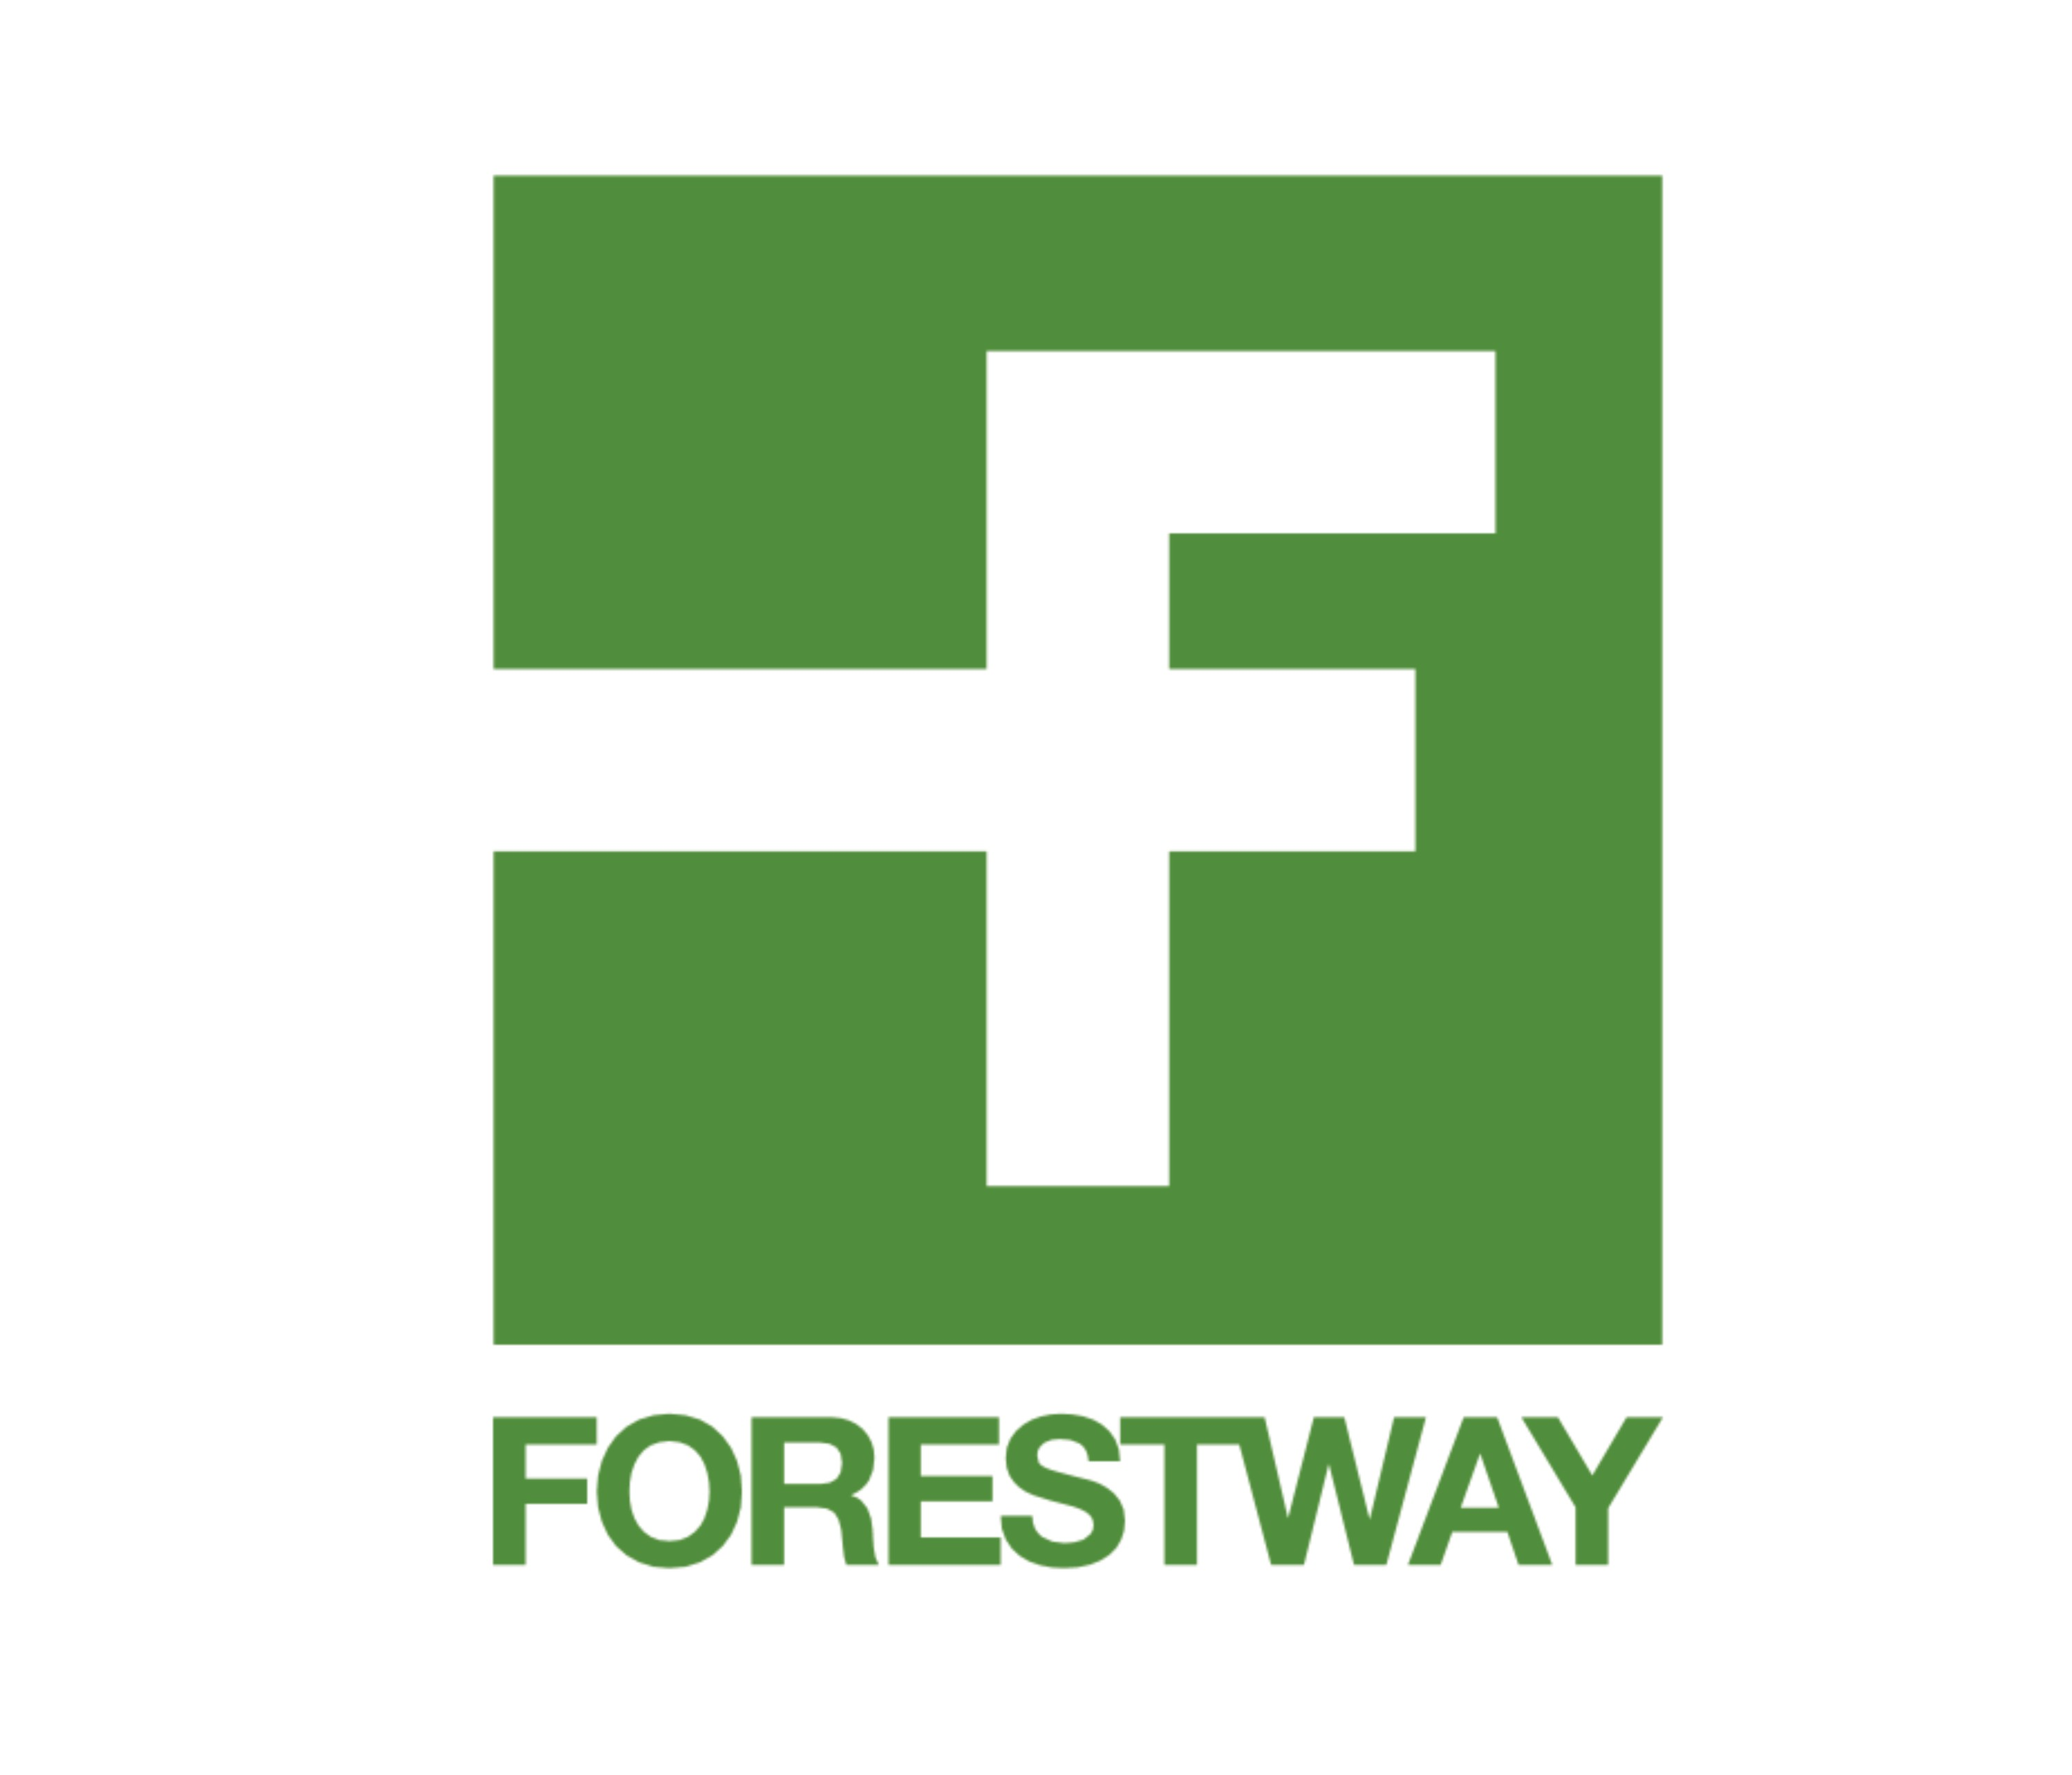 Forest Way - Forestway is more than just a holiday camp. Since 1997, Forestway has taken more than 41,000 people of all ages on adventures that build character, teach leadership skills and inspire a service ethic.